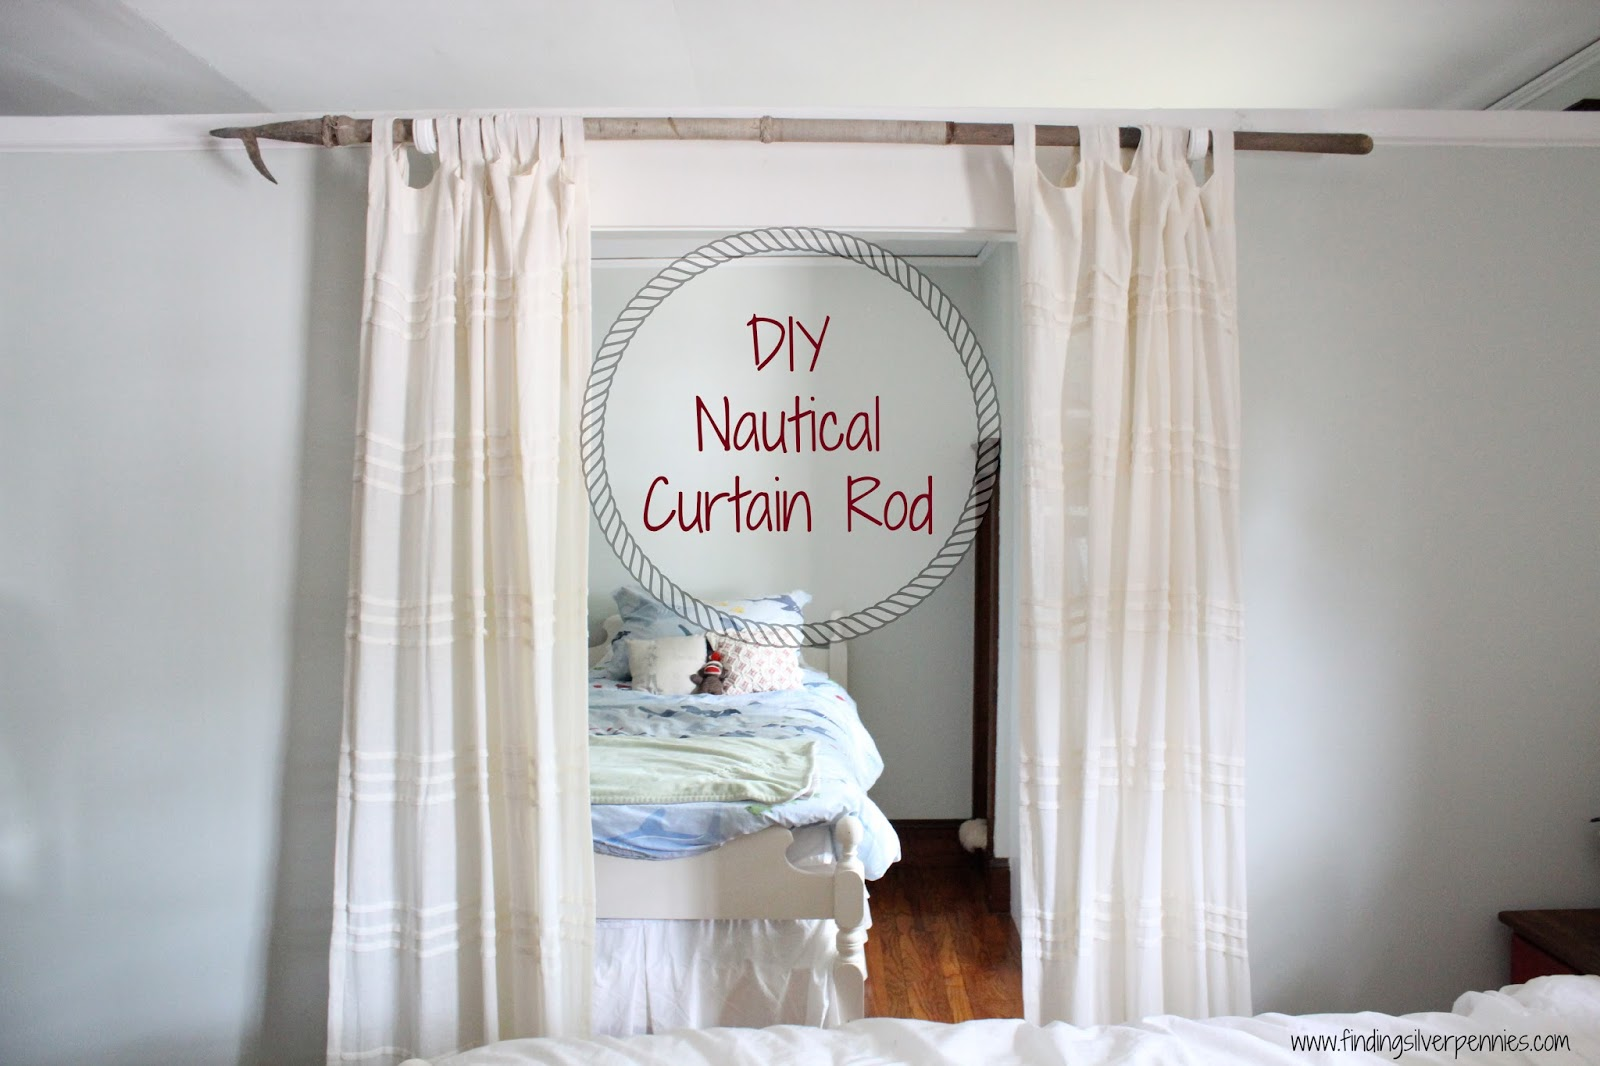 DIY Curtain Rod - Finding Silver Pennies